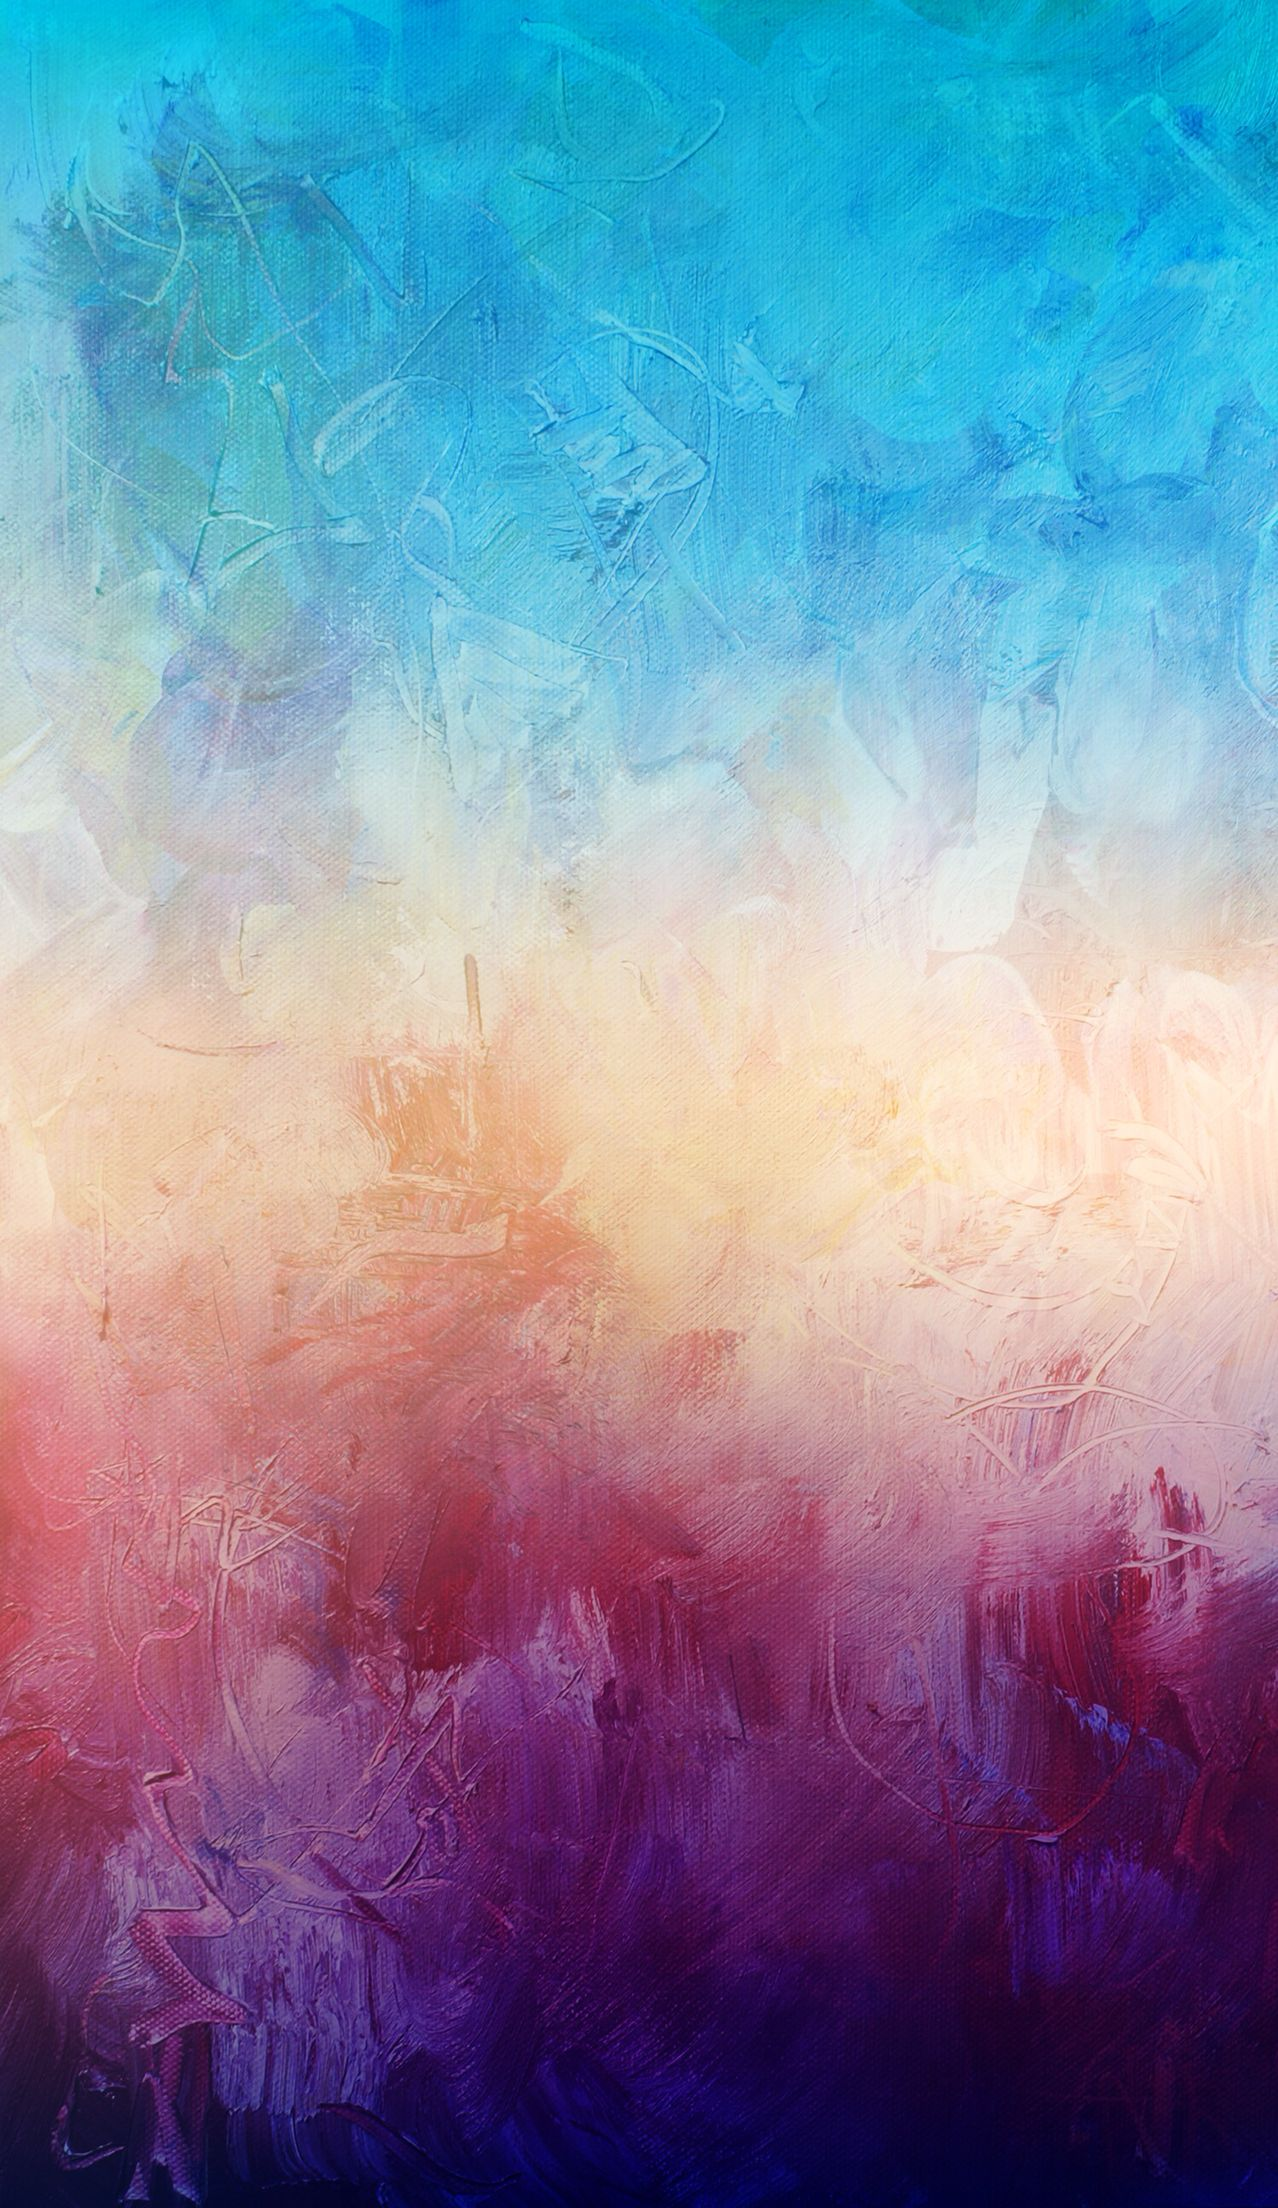 Wallpaper Iphone 6 Plus Iphone 6s Wallpaper Watercolor